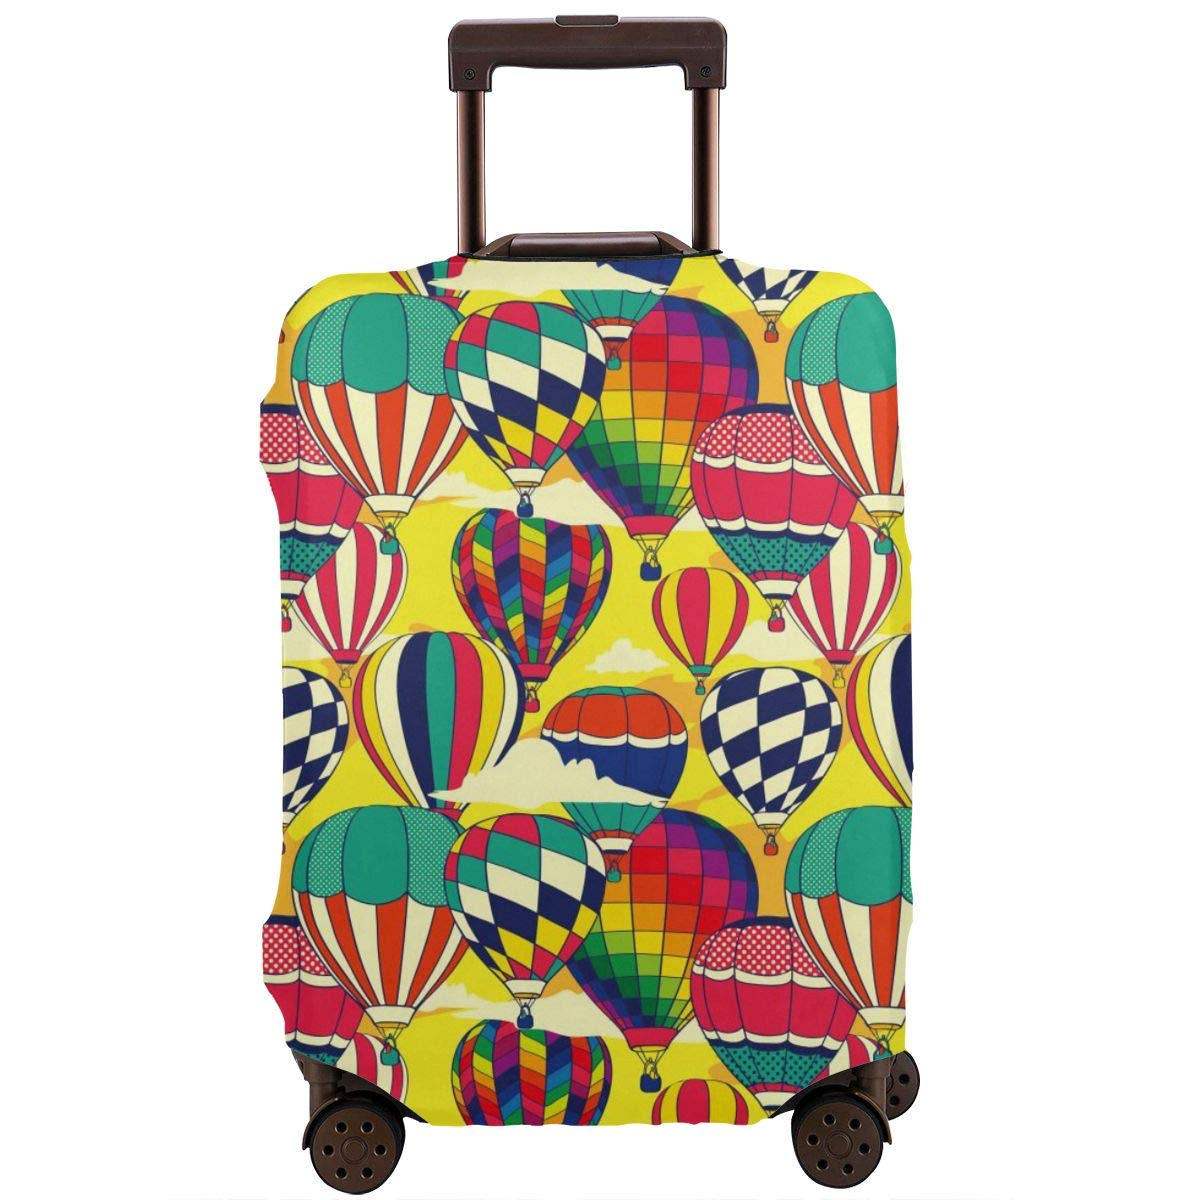 Pop Hot Air Balloons Travel Luggage Cover Suitcase Protector Washable Zipper Baggage Cover